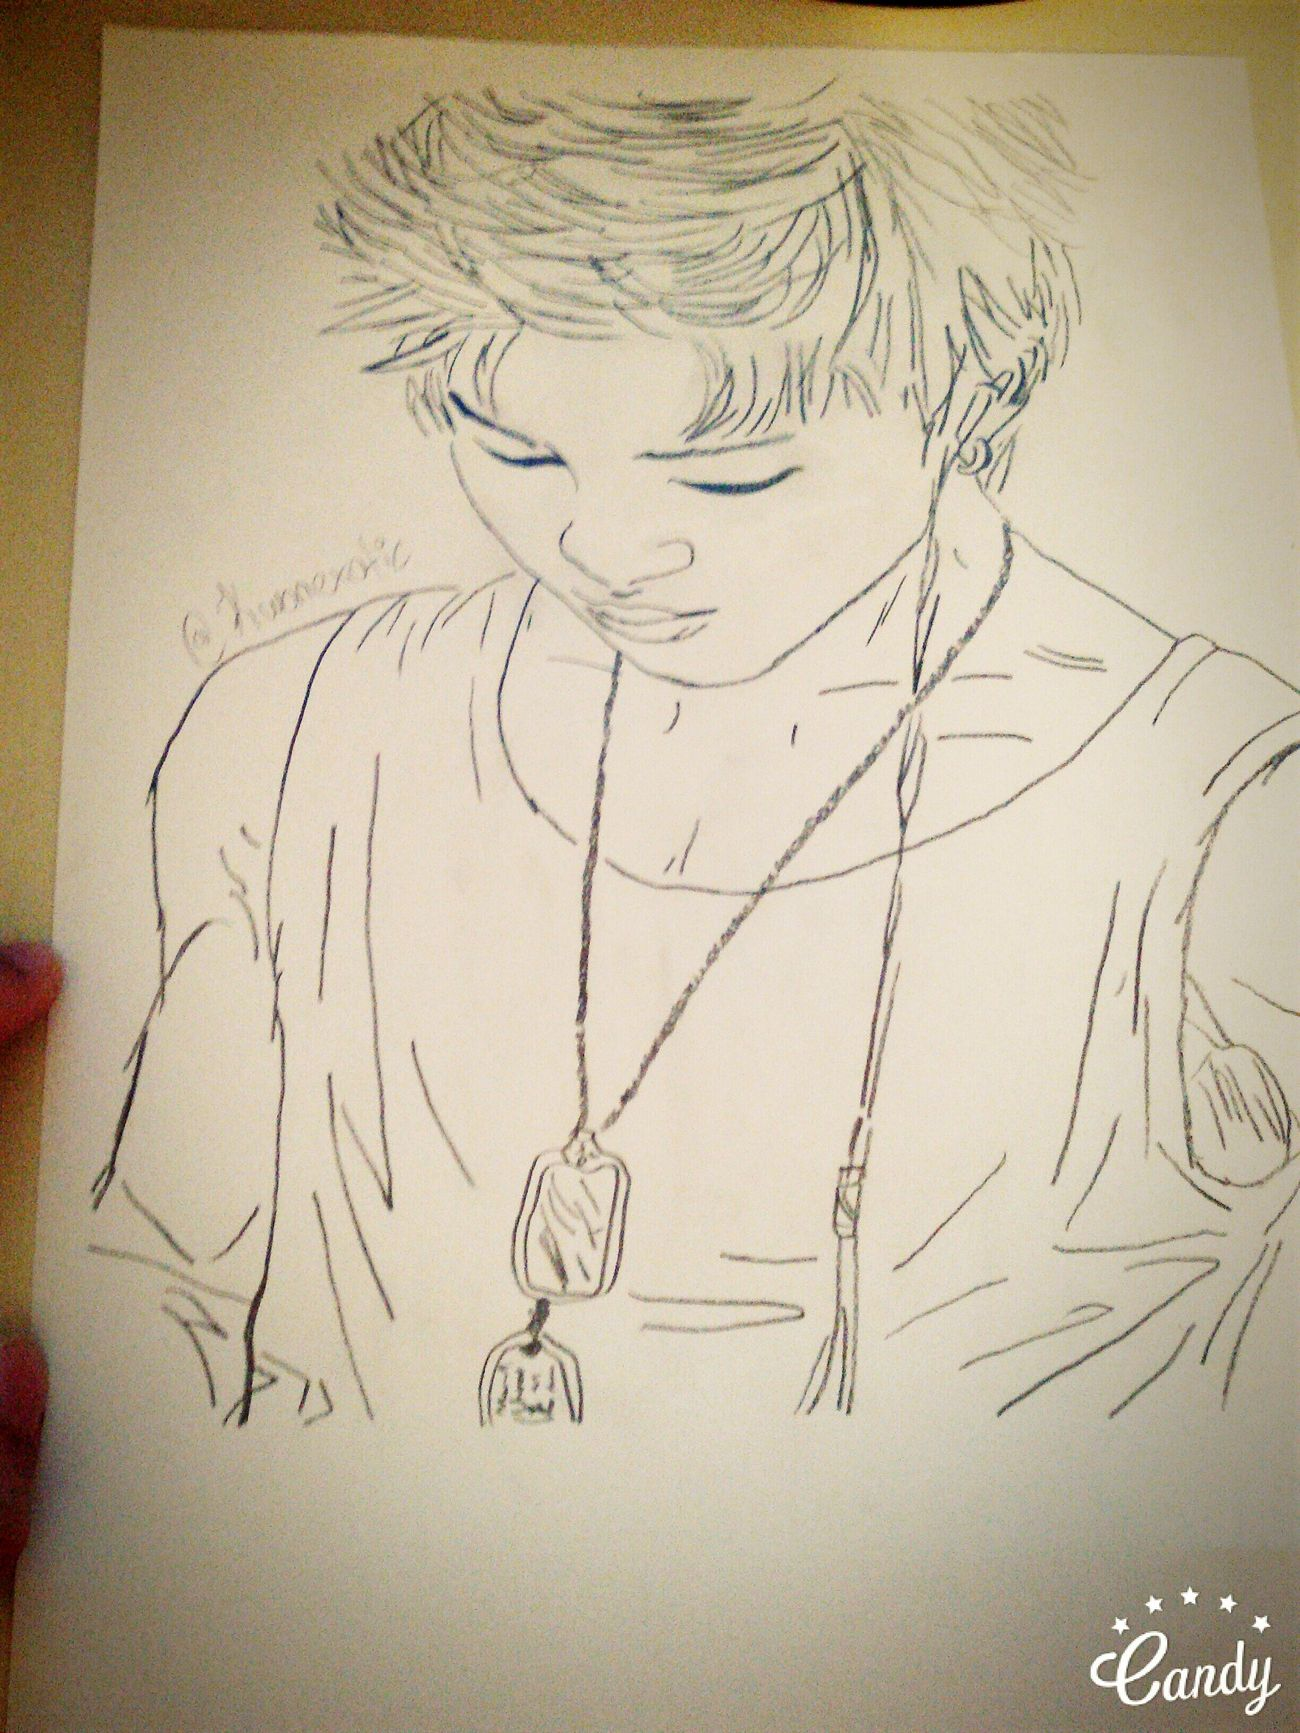 Park Jimin My Best Photo 2015 Cute Pretty Bts Jimin Jimin❤ Parkjimin Kpopfan BTS Bangtan Sonyeondan Kpoplover Kpop♥️ Drawing Draw Pencil Drawing Kpop<3 IloveKorea Kwonexotic Kwoneunhee BTS Btsarmy Kpop Kpopper My Drawings Drawing ✏ MyDrawing